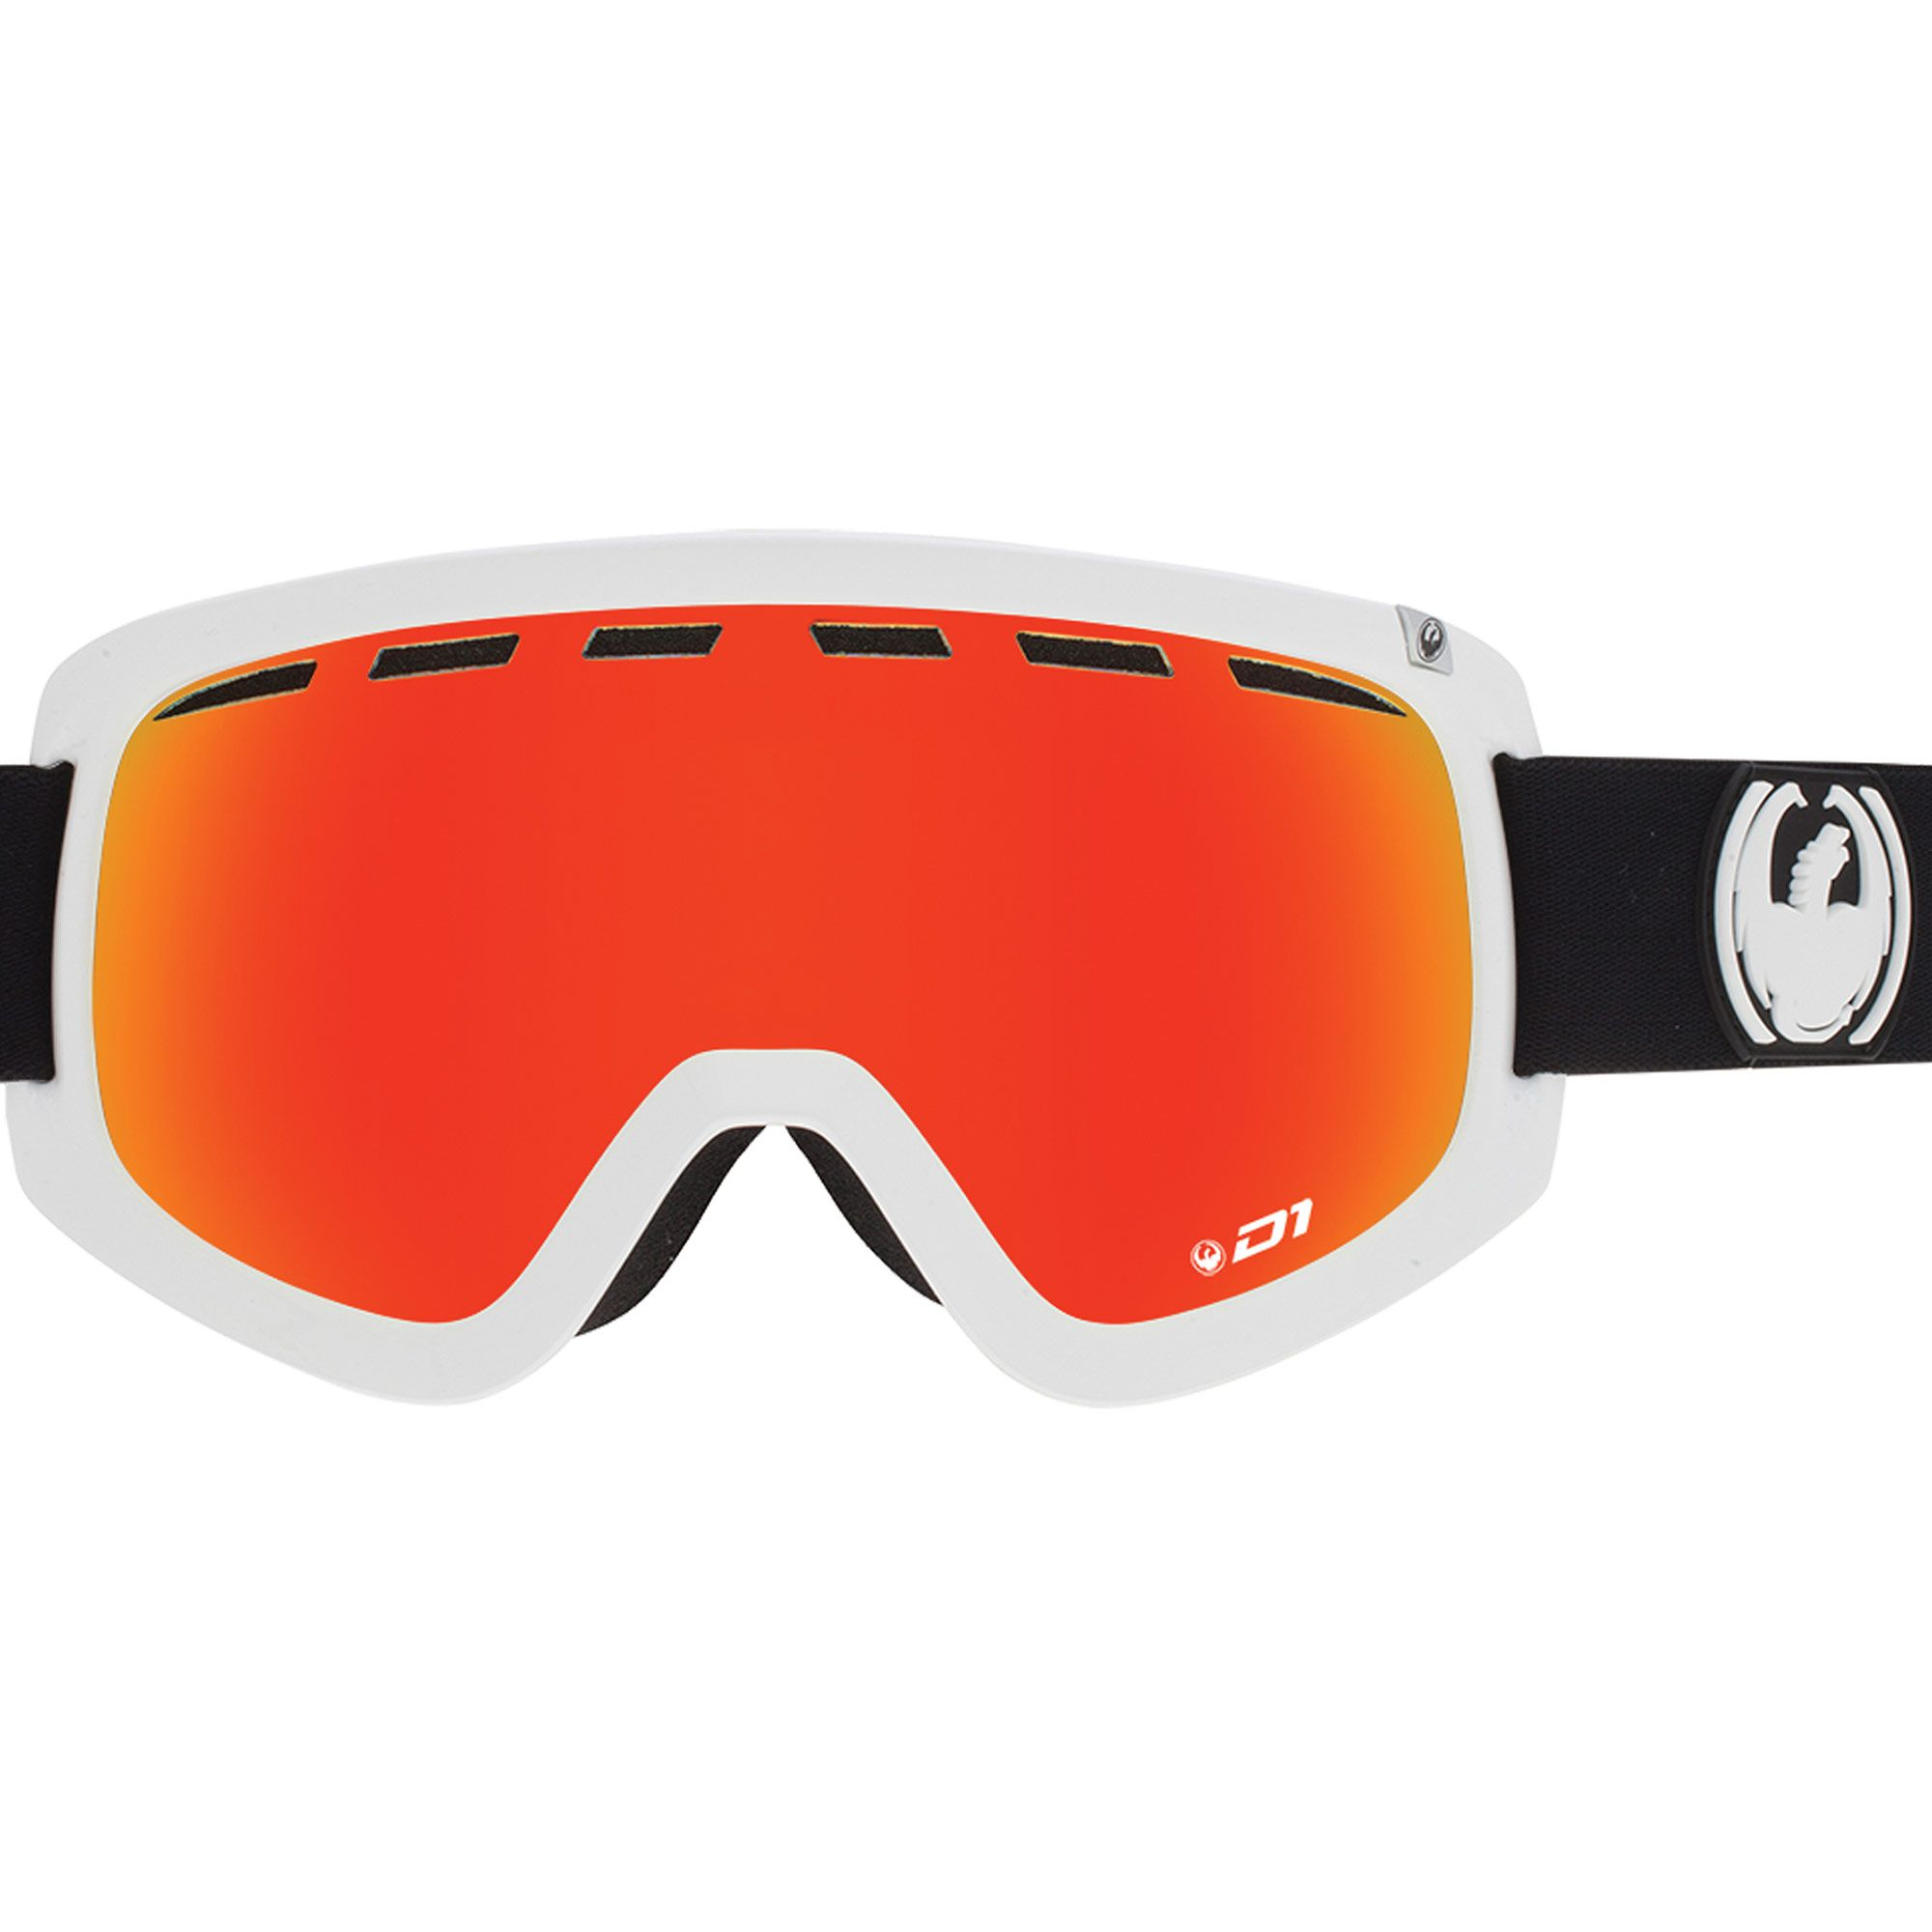 The D1 Goggle is the large fit framed goggle from Dragon. The Inverse white colour with Red Ion Lens is one of the most popular colours with a bonus lens.